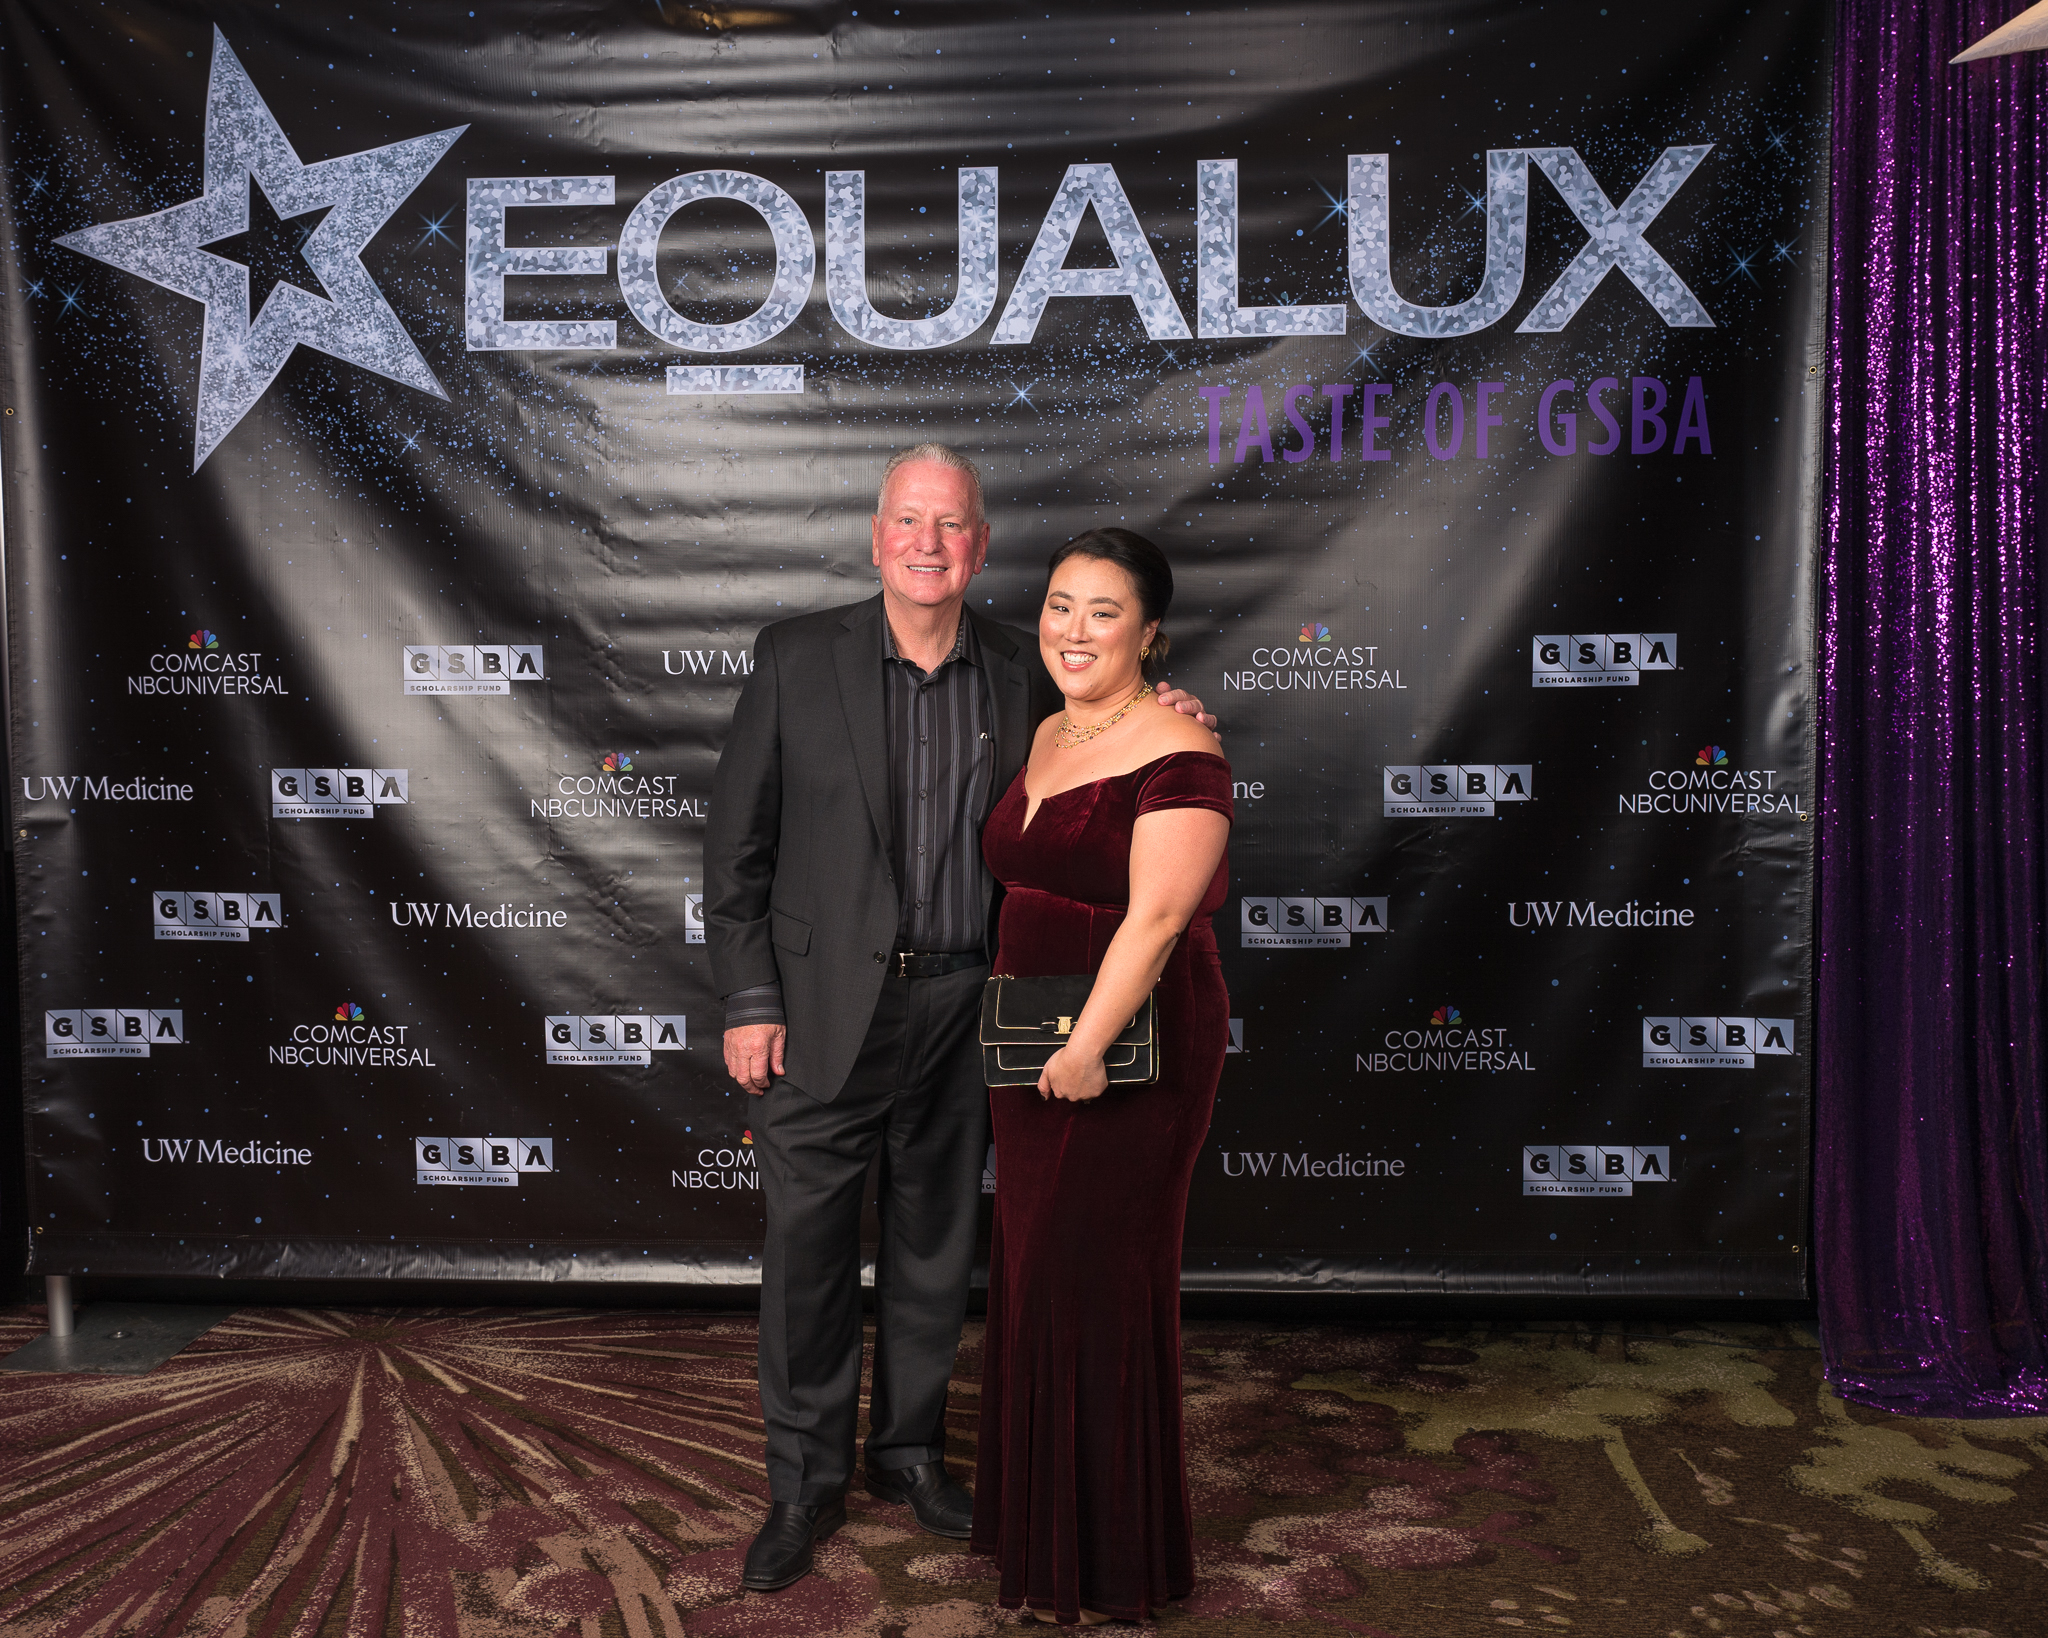 111718_GSBA EQUALUX at The Westin Seattle (Credit- Nate Gowdy)-126.jpg